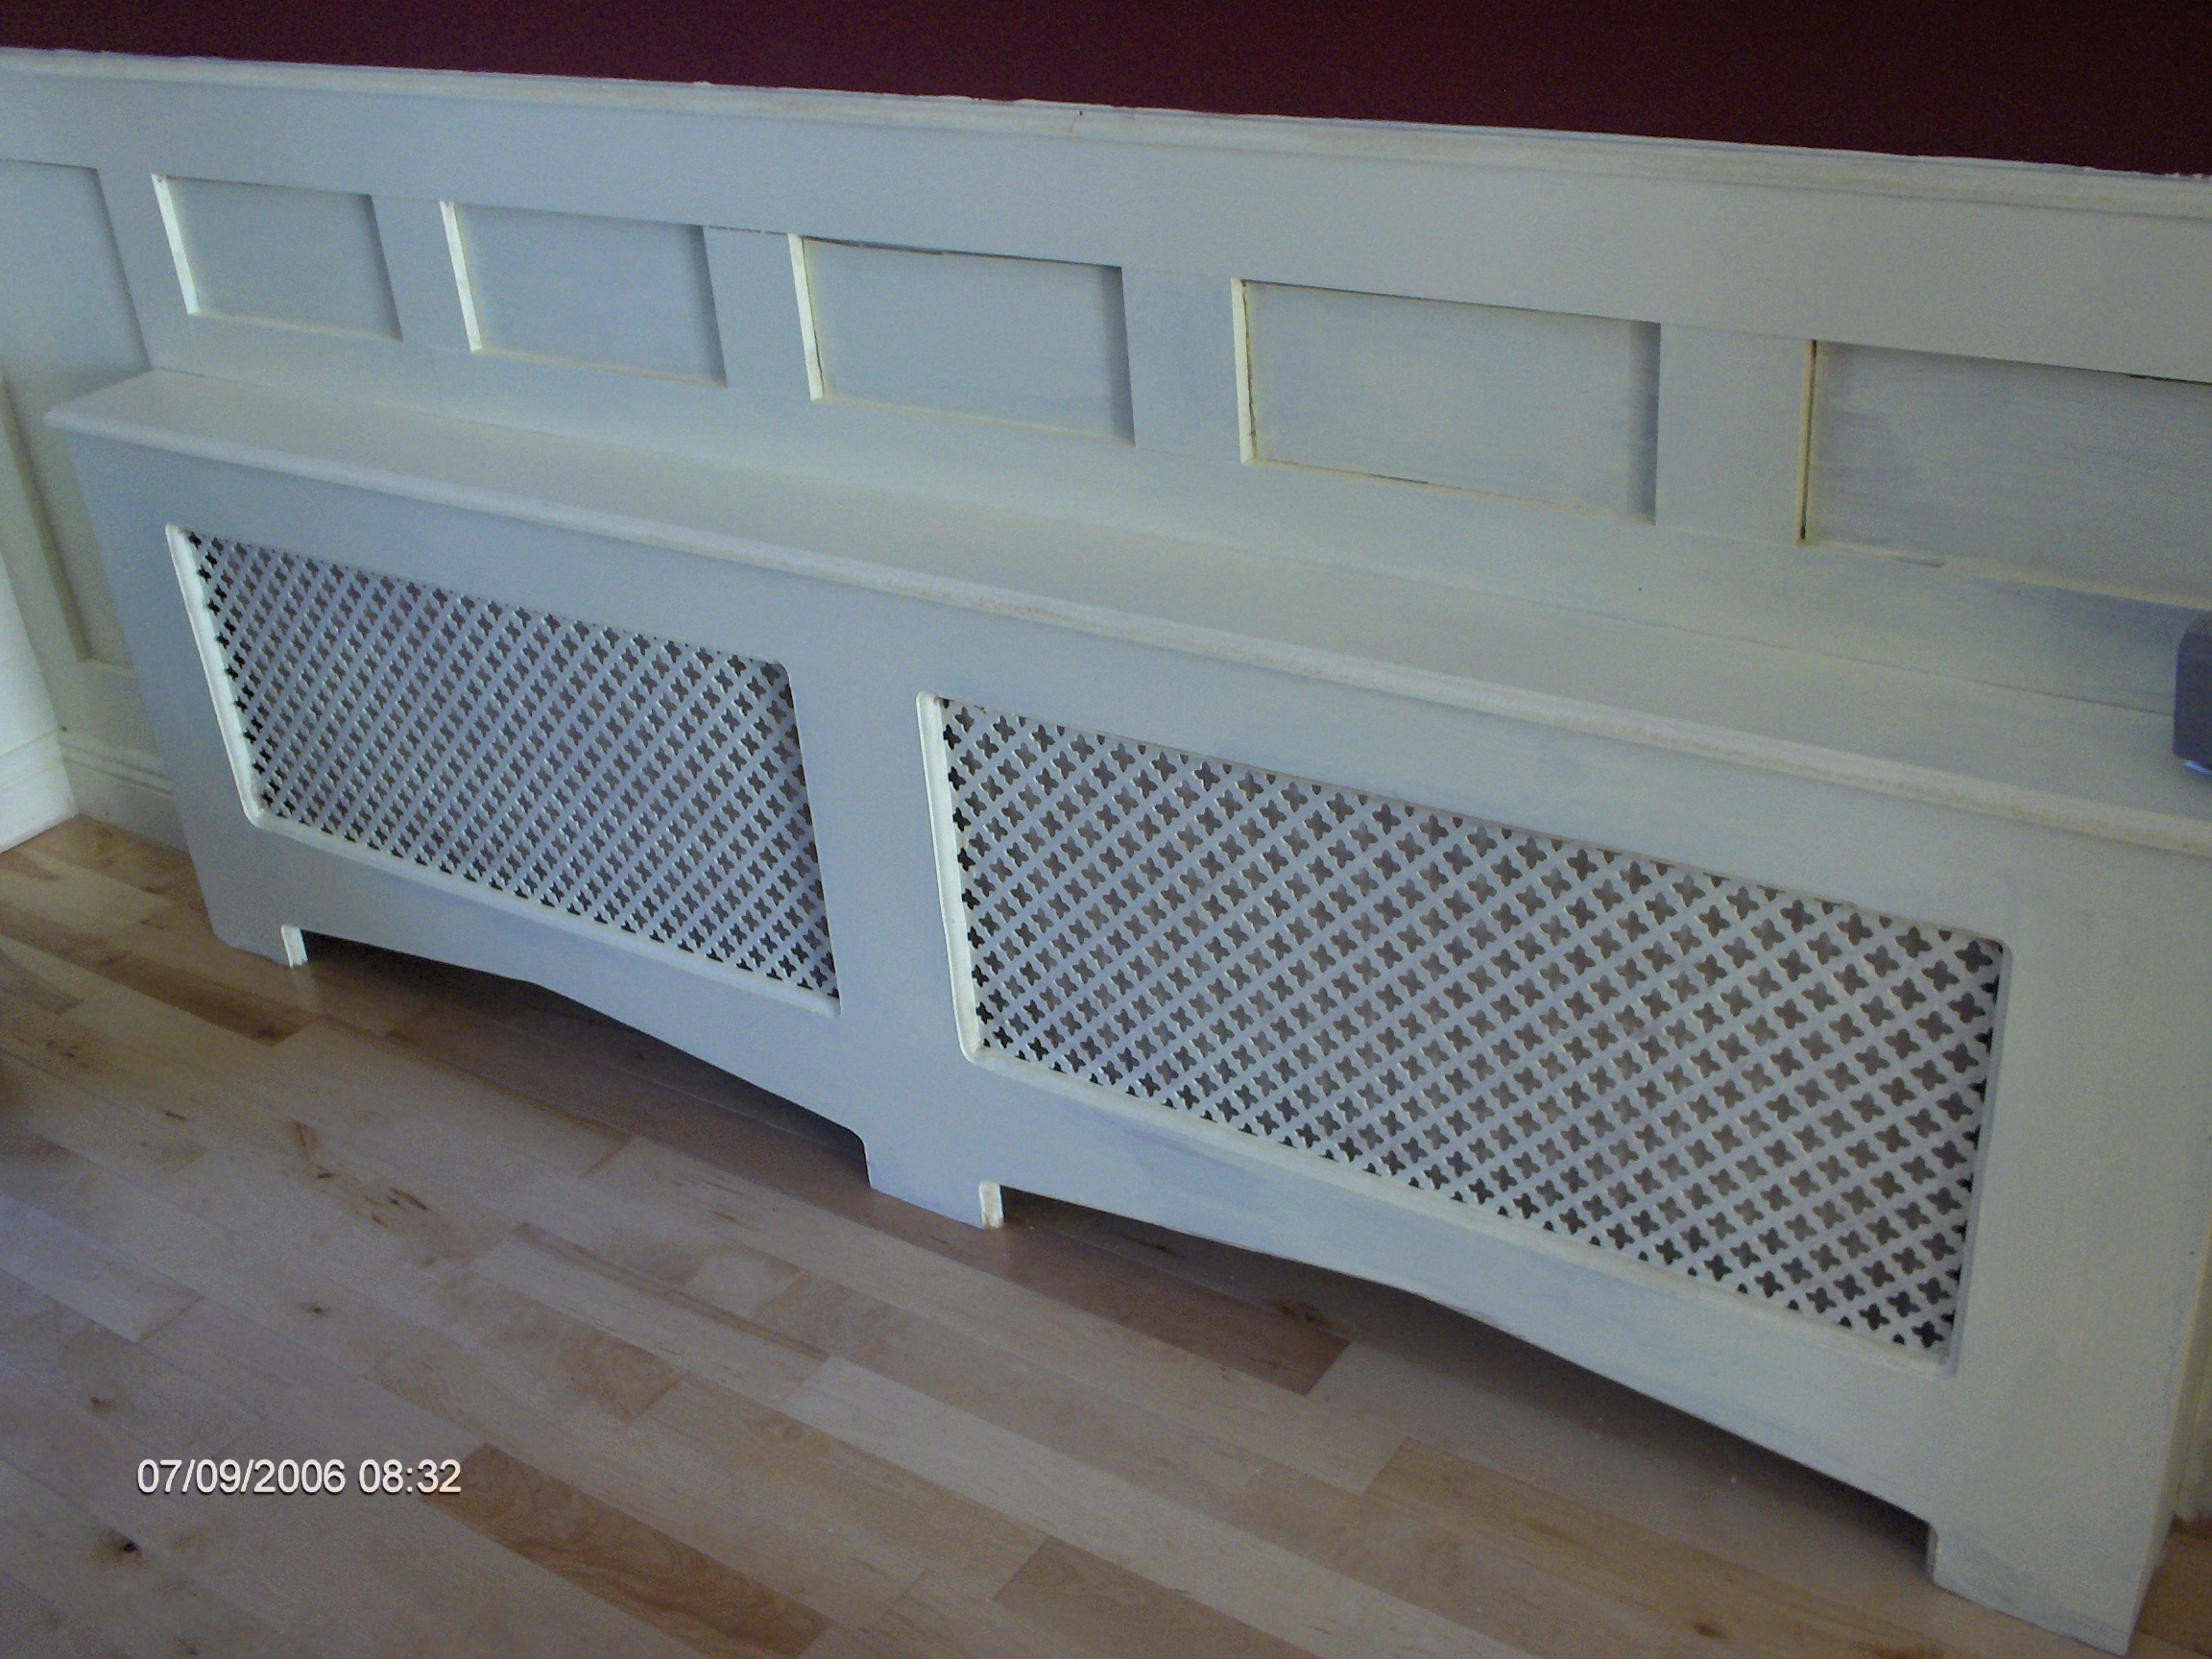 Purpose build radiator cover and wall panelling to match, and solid birch flooring,